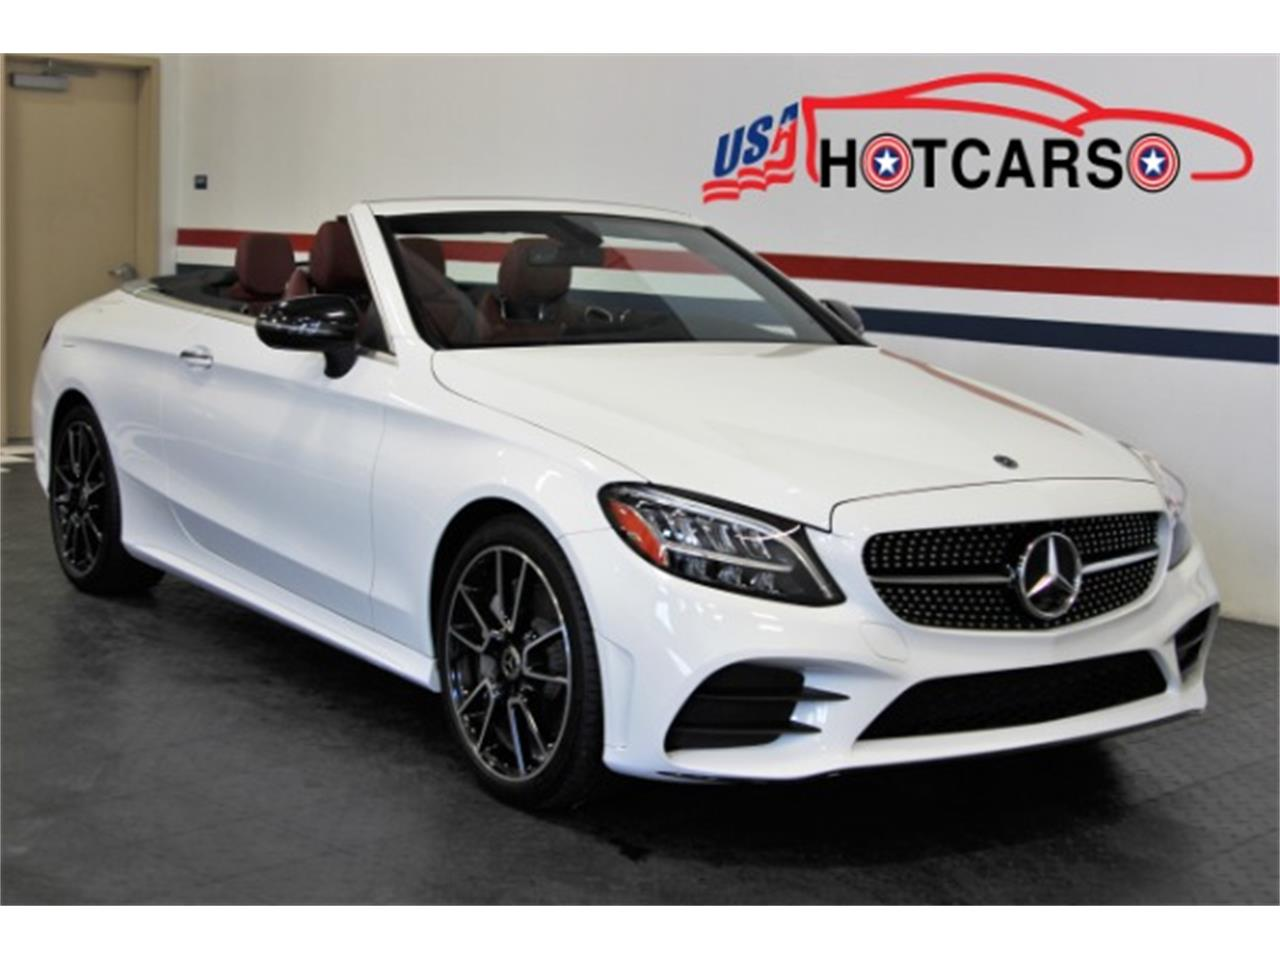 for sale 2019 mercedes-benz c-class in san ramon, california cars - san ramon, ca at geebo